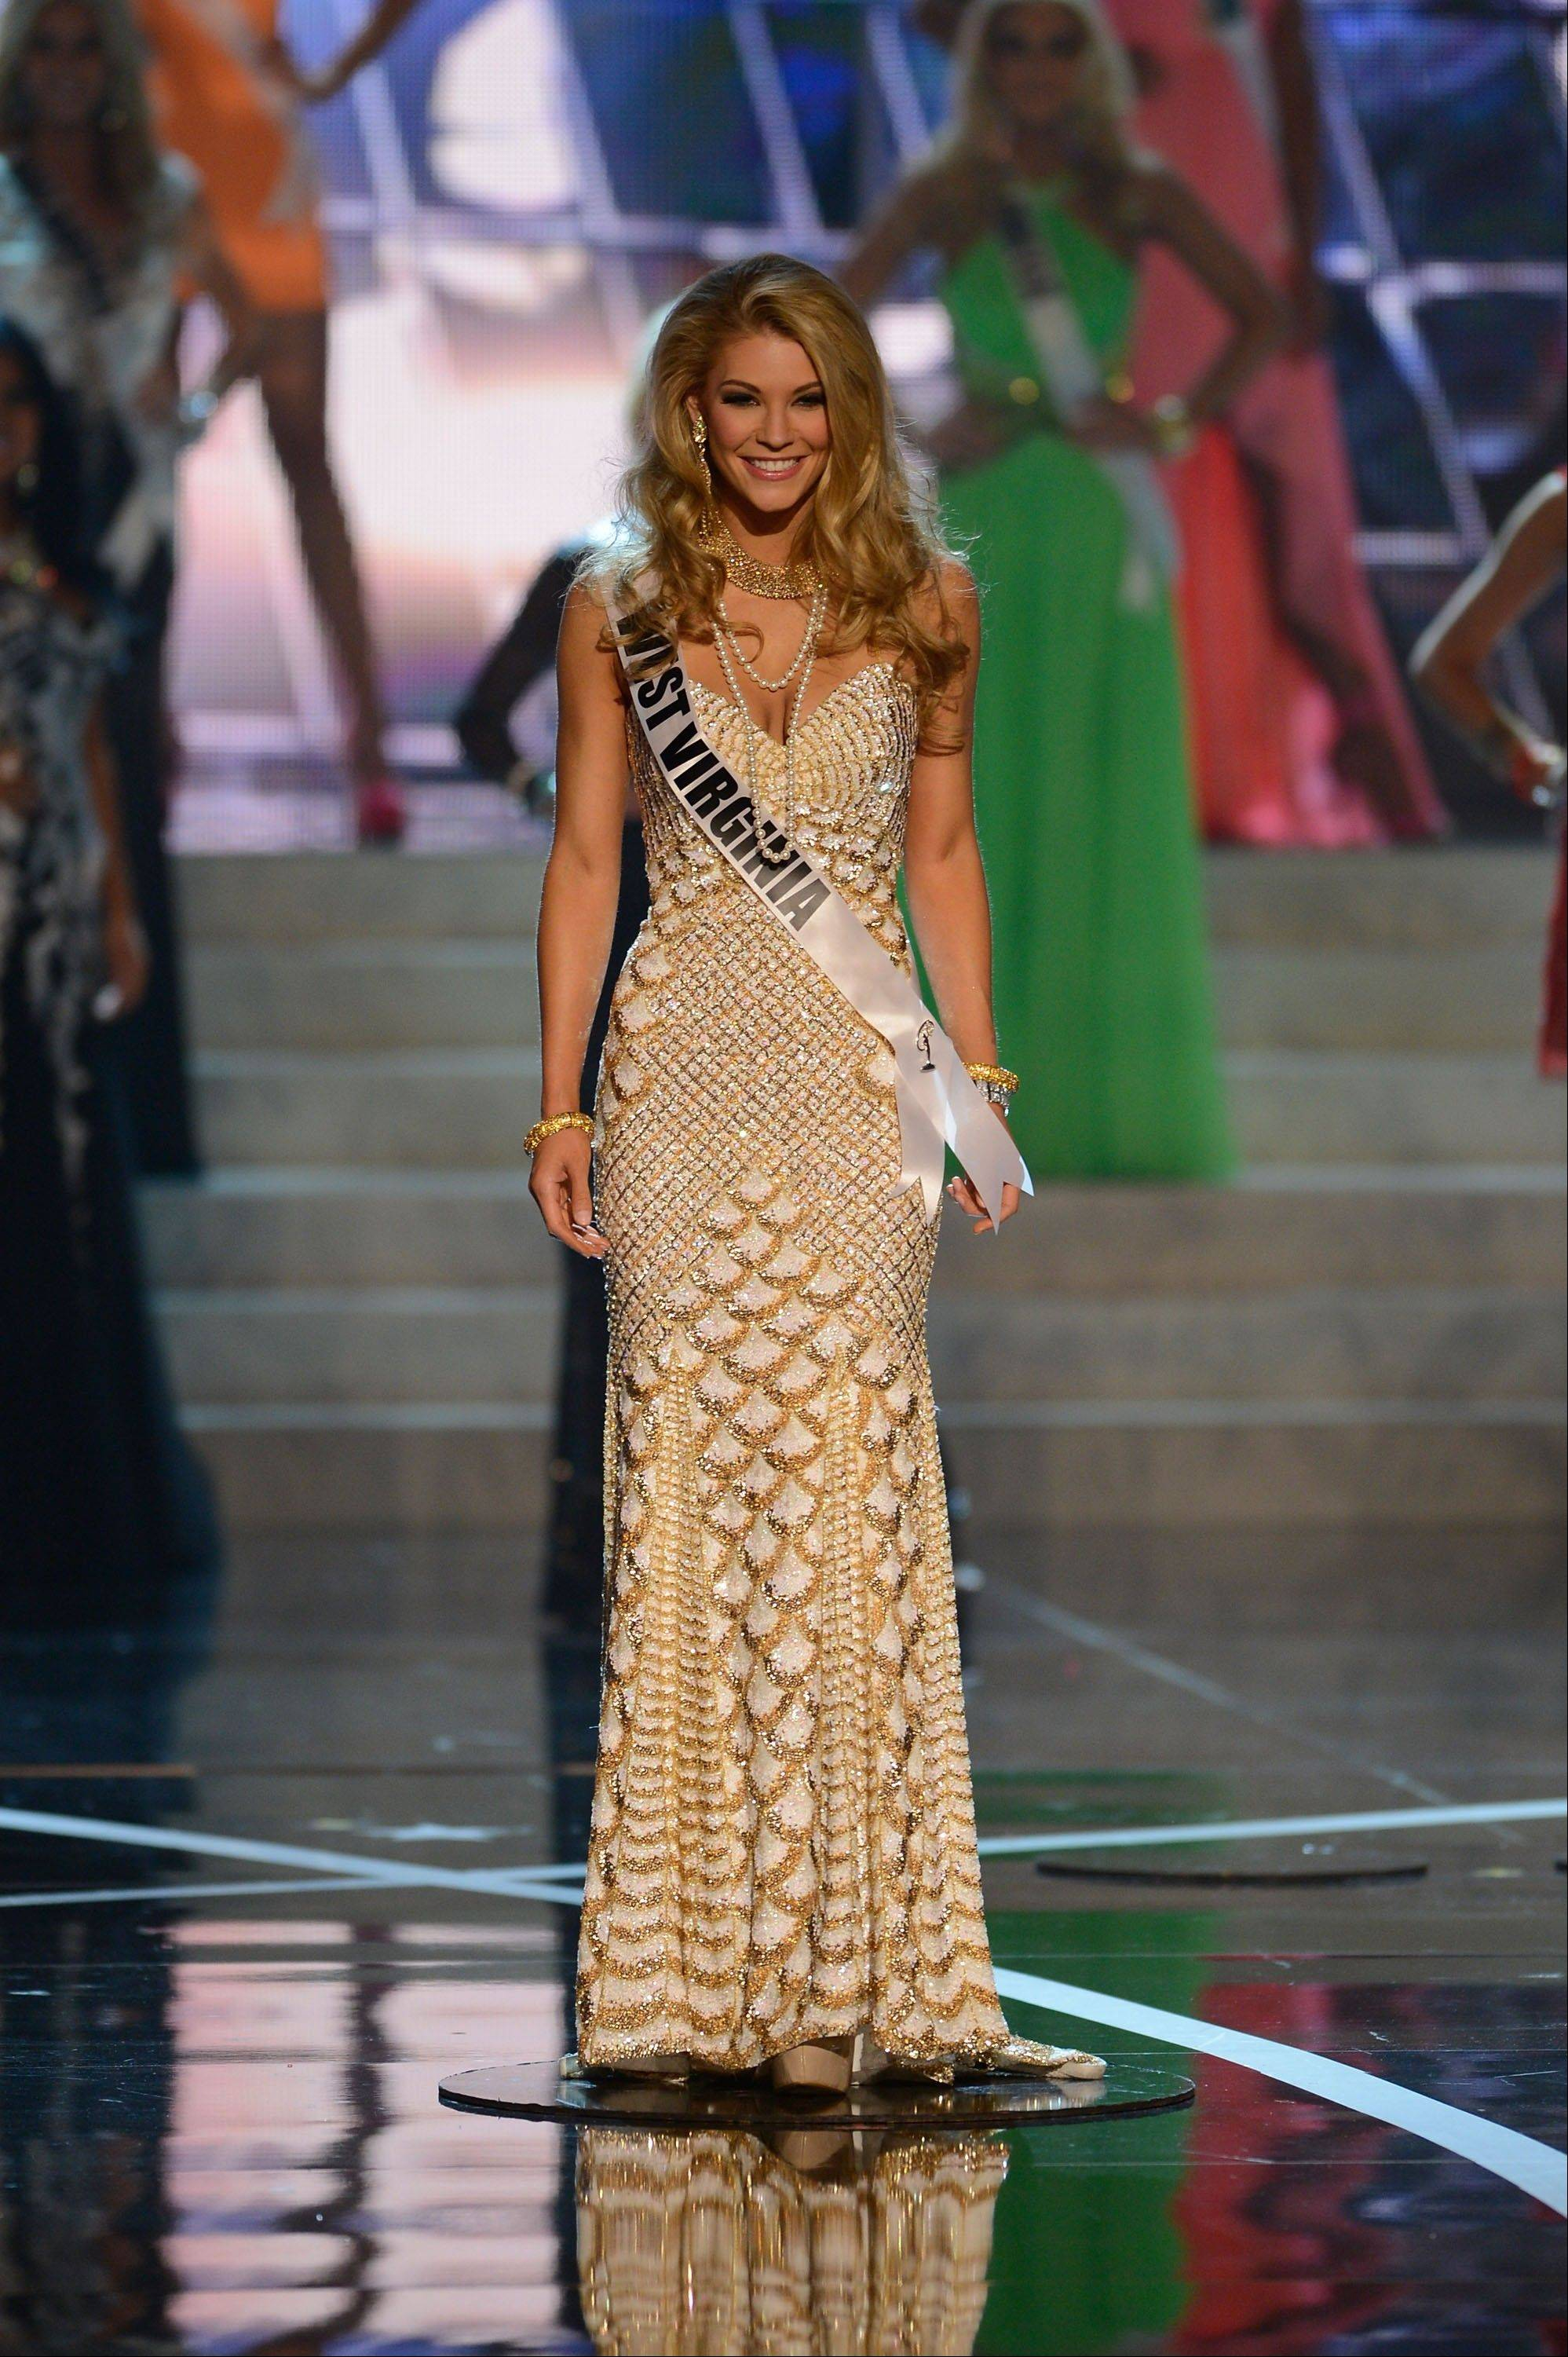 Miss West Virginia Chelsea Welch walks the runway during the introductions of the Miss USA 2013 pageant, Sunday, June 16, 2013, in Las Vegas.